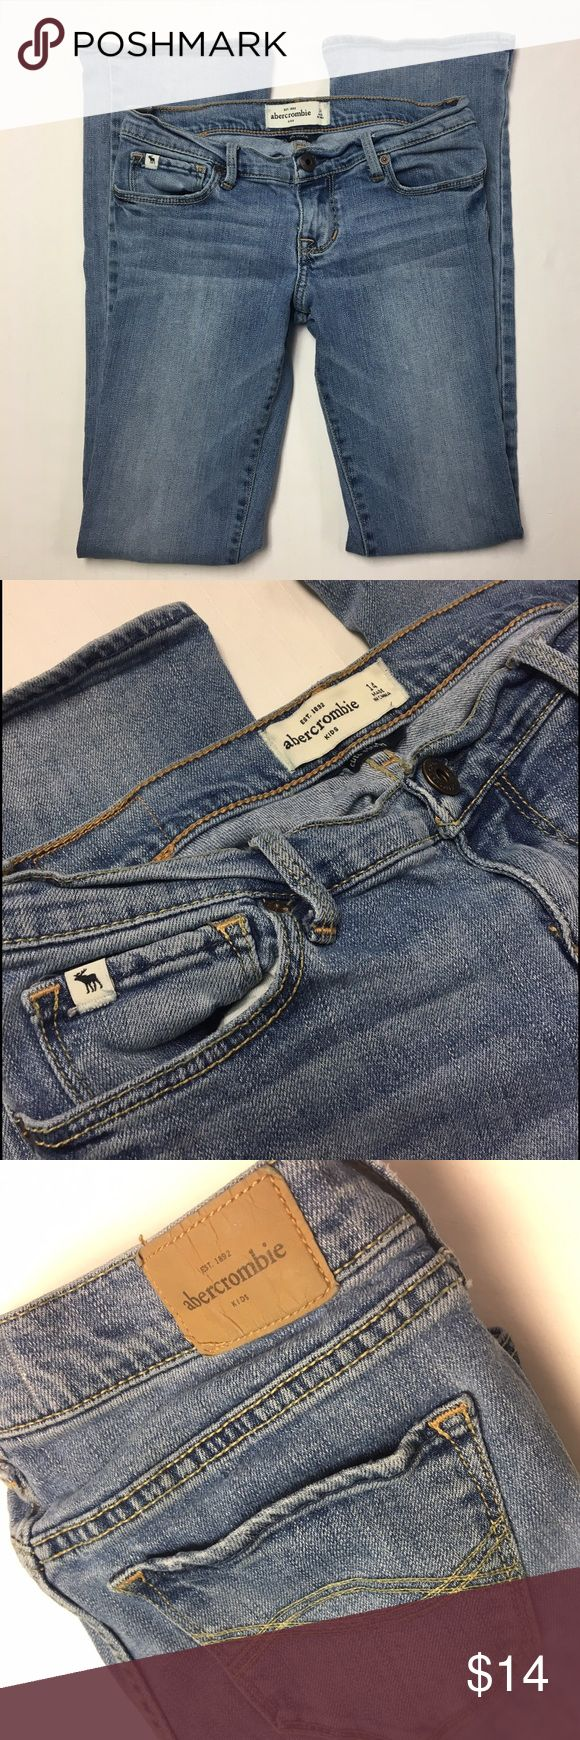 Abercrombie Girls Sz. 14 Jeans Abercrombie Kids size 14 light wash boot cut jeans. Excellent used condition. No stains, tears or thinning at the knee. Check out my closet for more items to receive 15% bundle discount & save with combined shipping! 🤑👍 abercrombie kids Bottoms Jeans